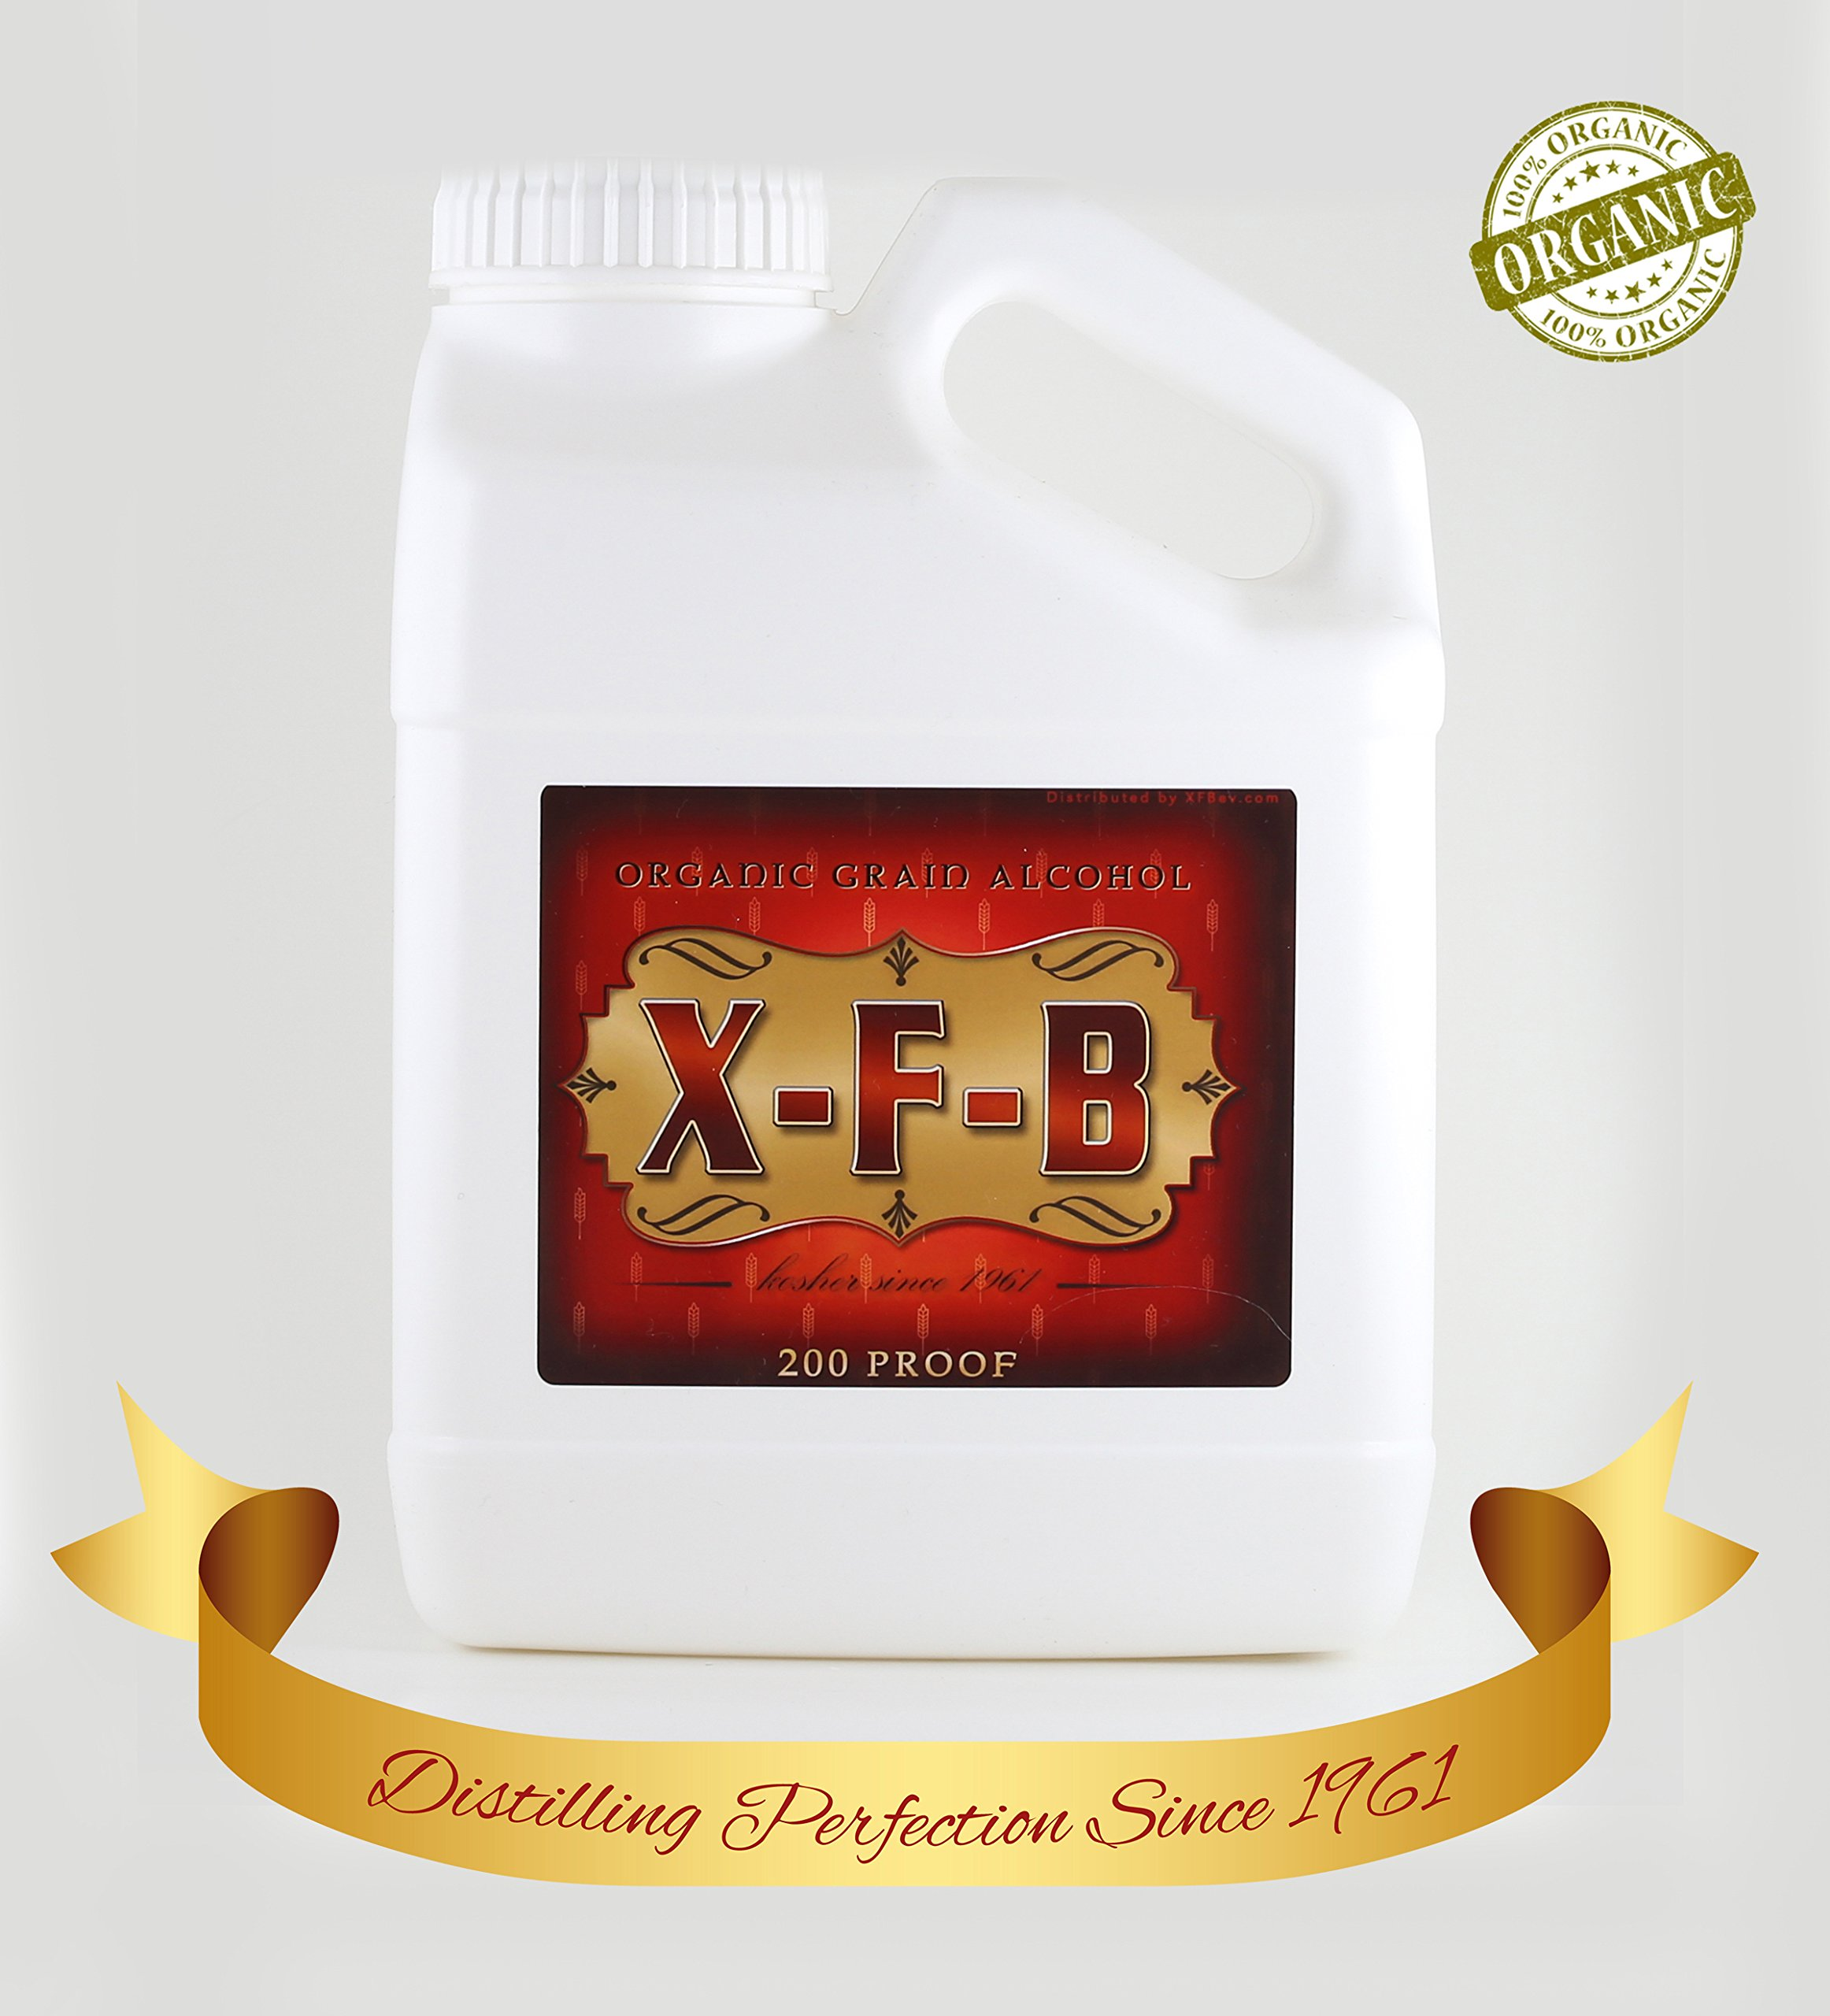 1-Gallon 200 Essential Oil XTRACTOR from X-F-B 100% Organic & PHARMA Grade PLS Ask Anyone WHO HAS Used Our Products & They'll Tell You They're The PUREST ON The Planet